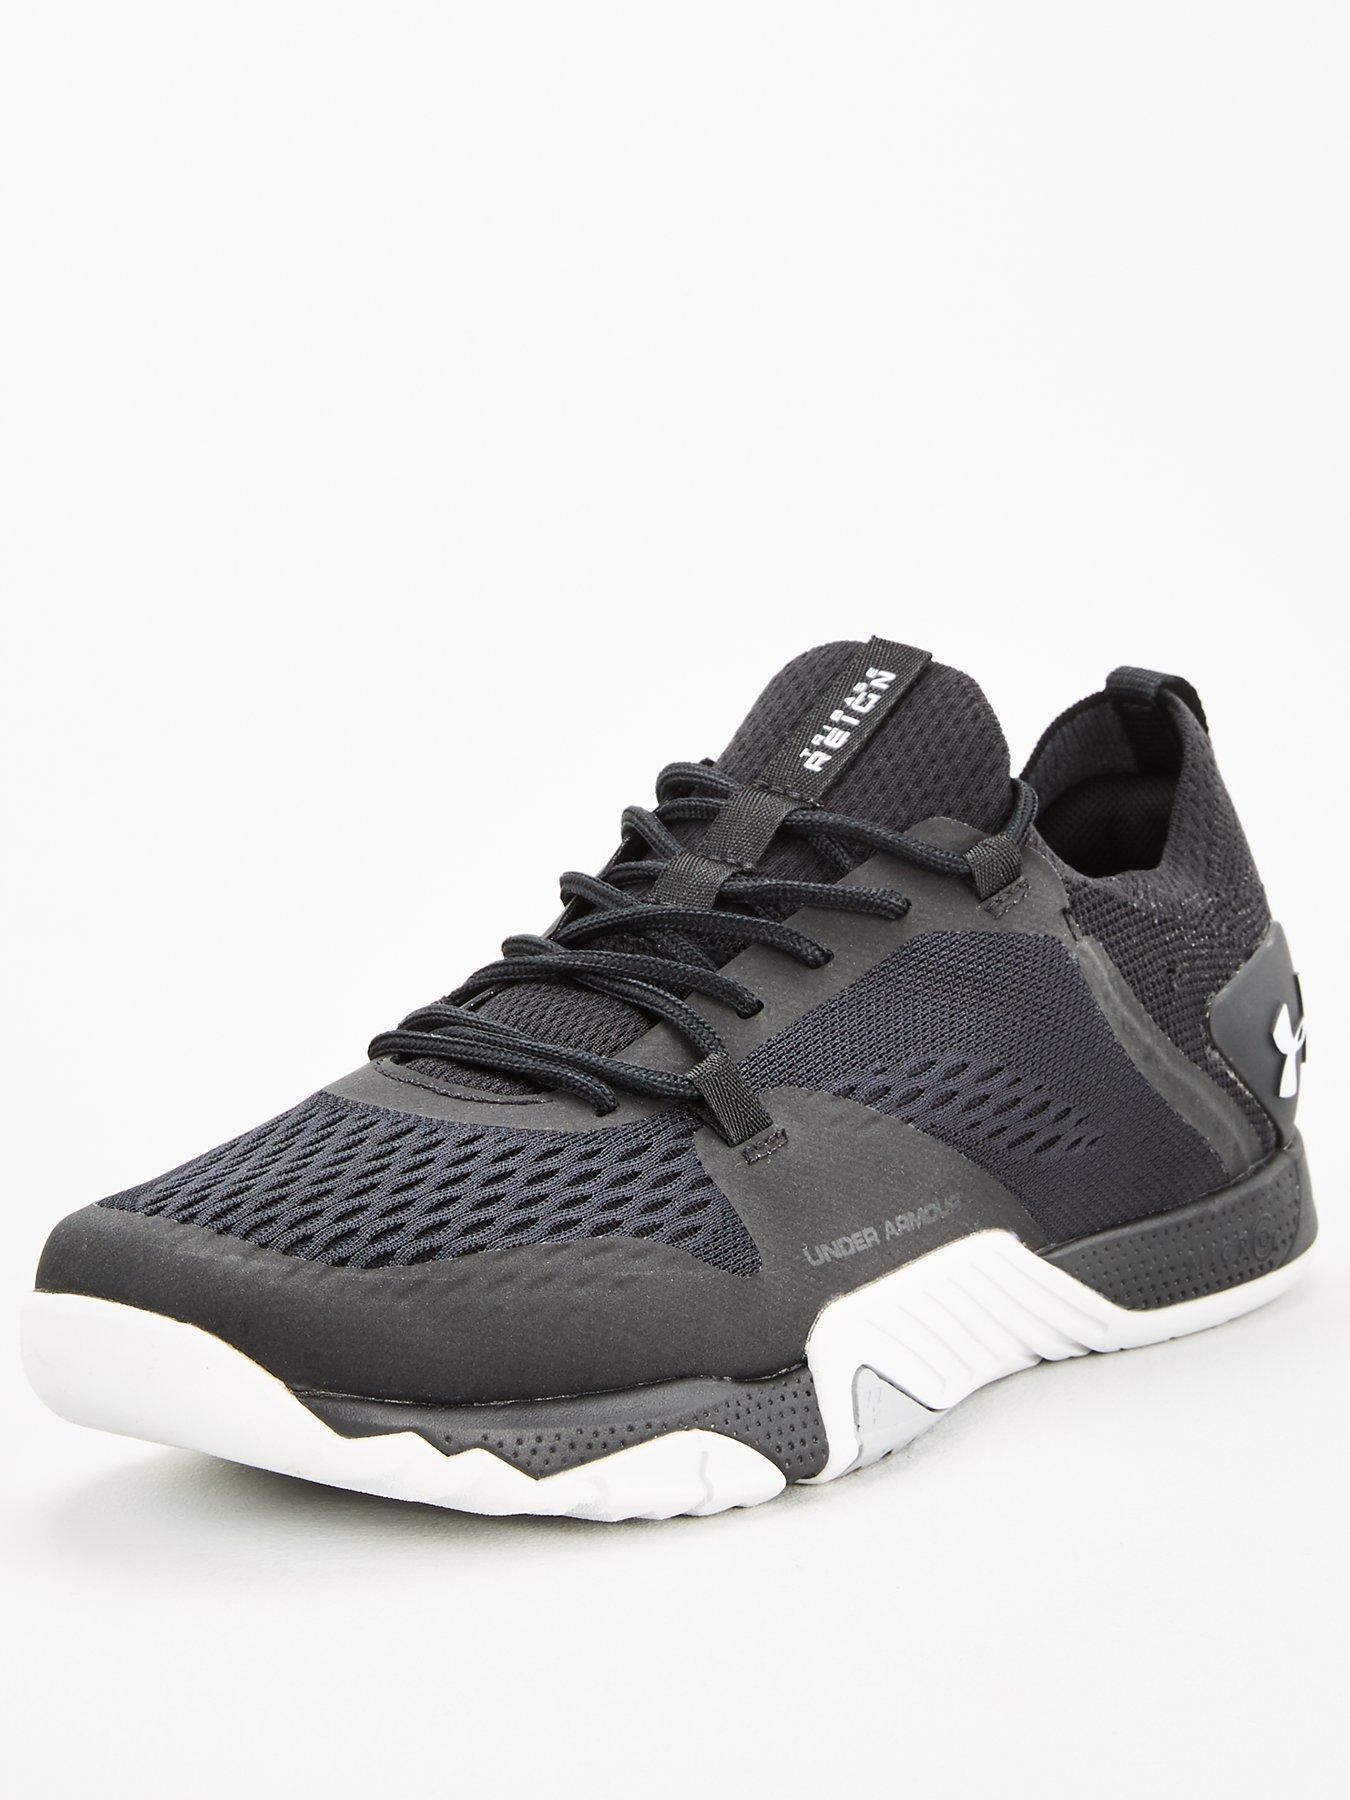 Under armour | Trainers | Men | www